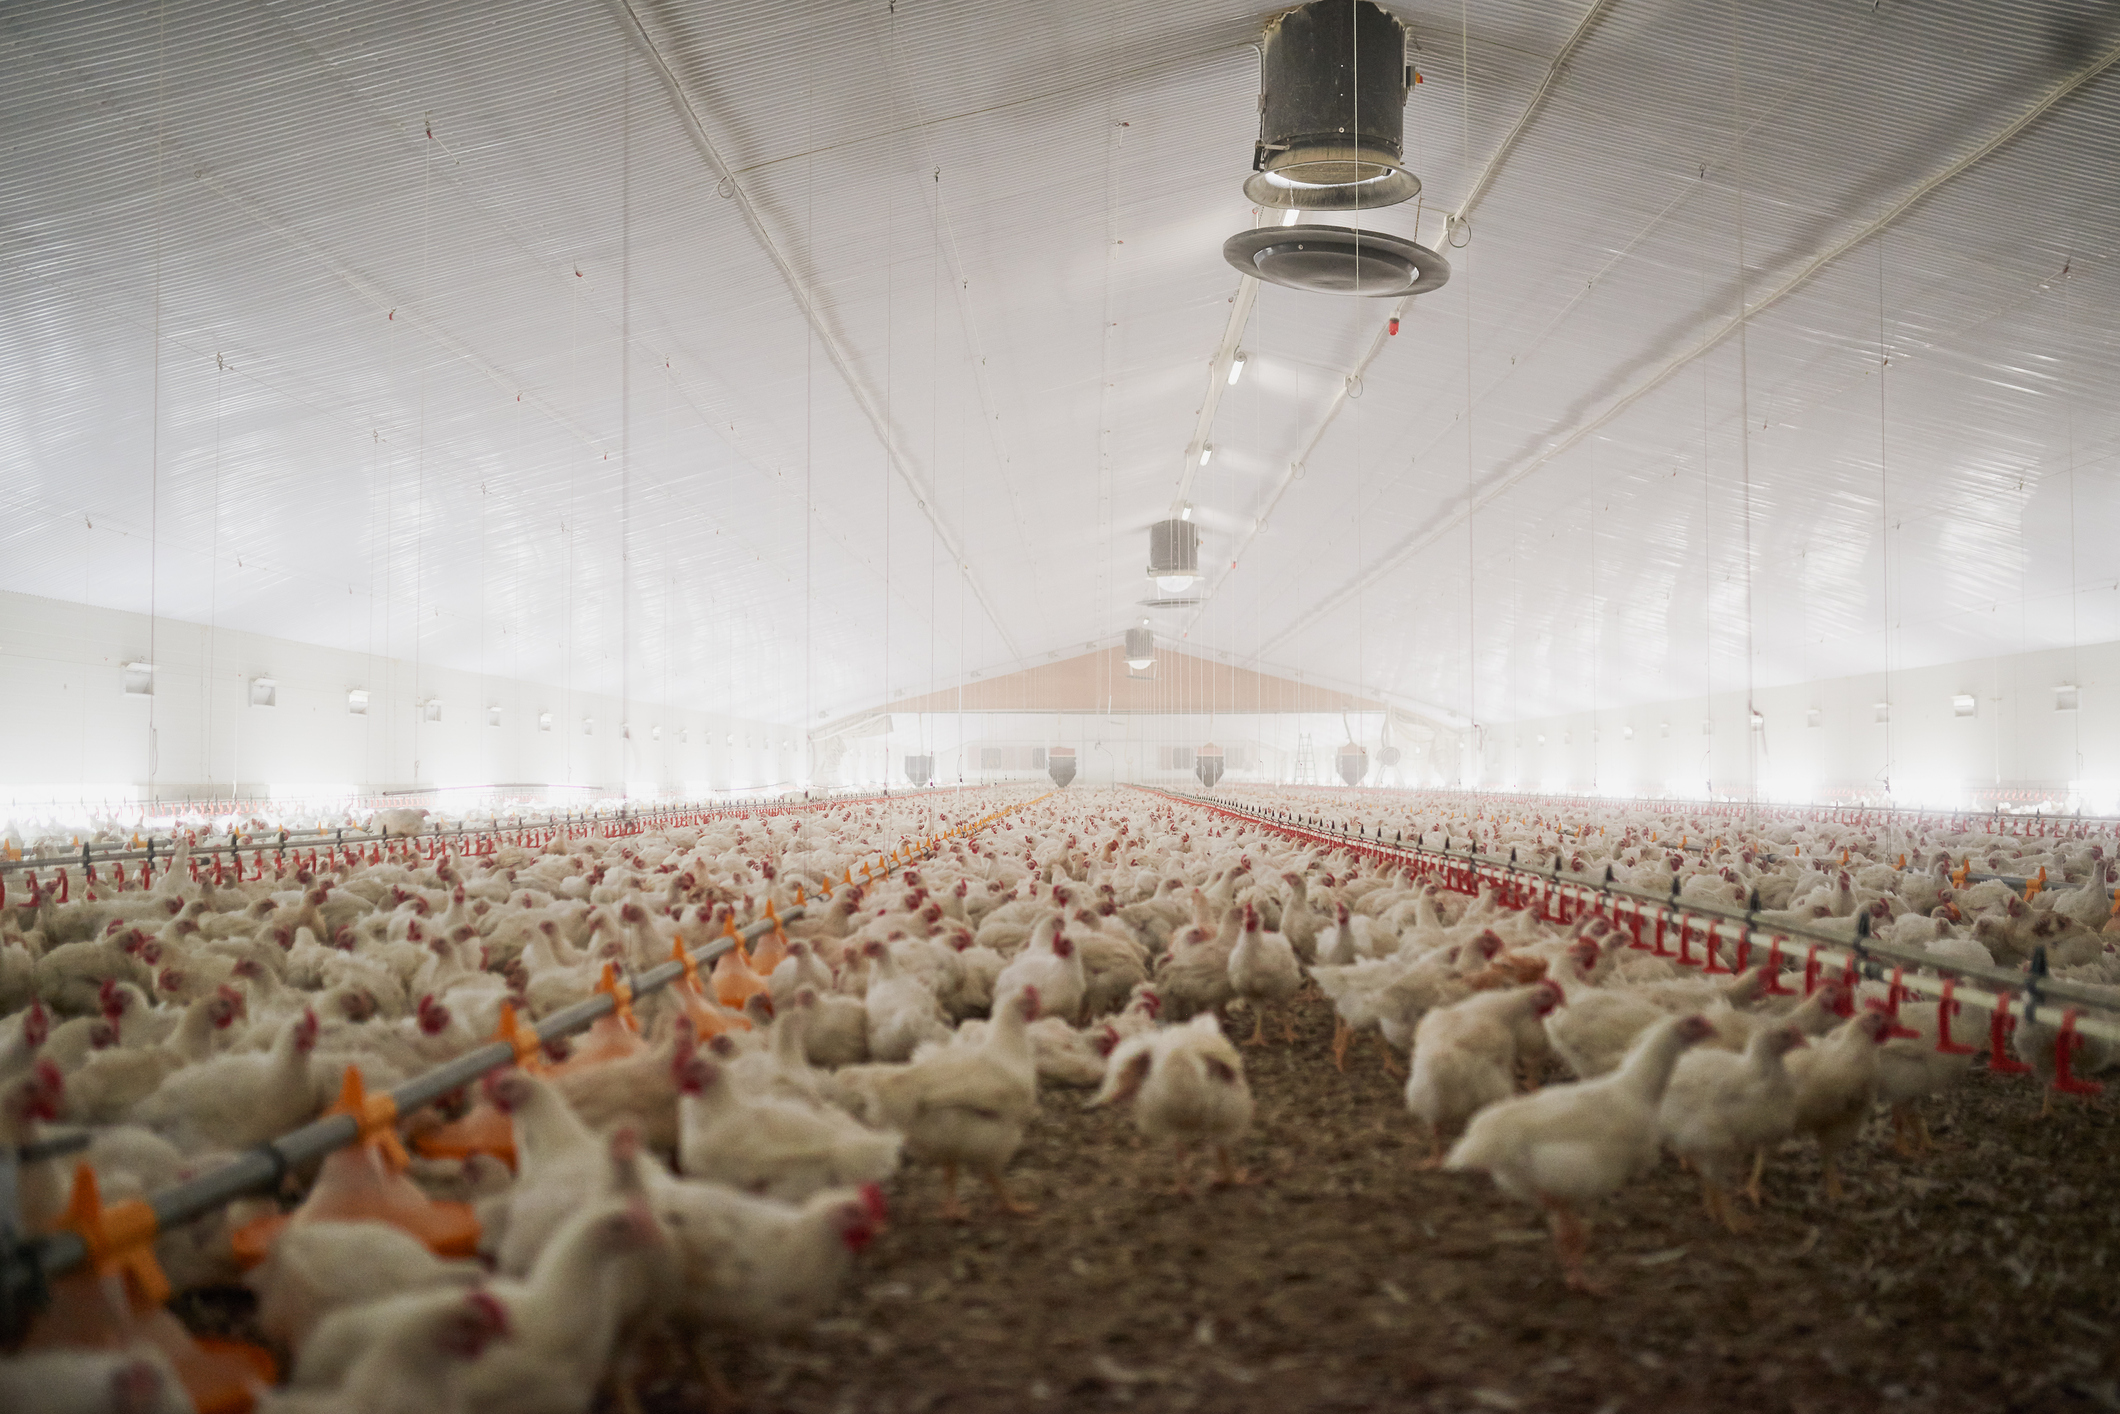 The Short Evolution of Chicken Farms